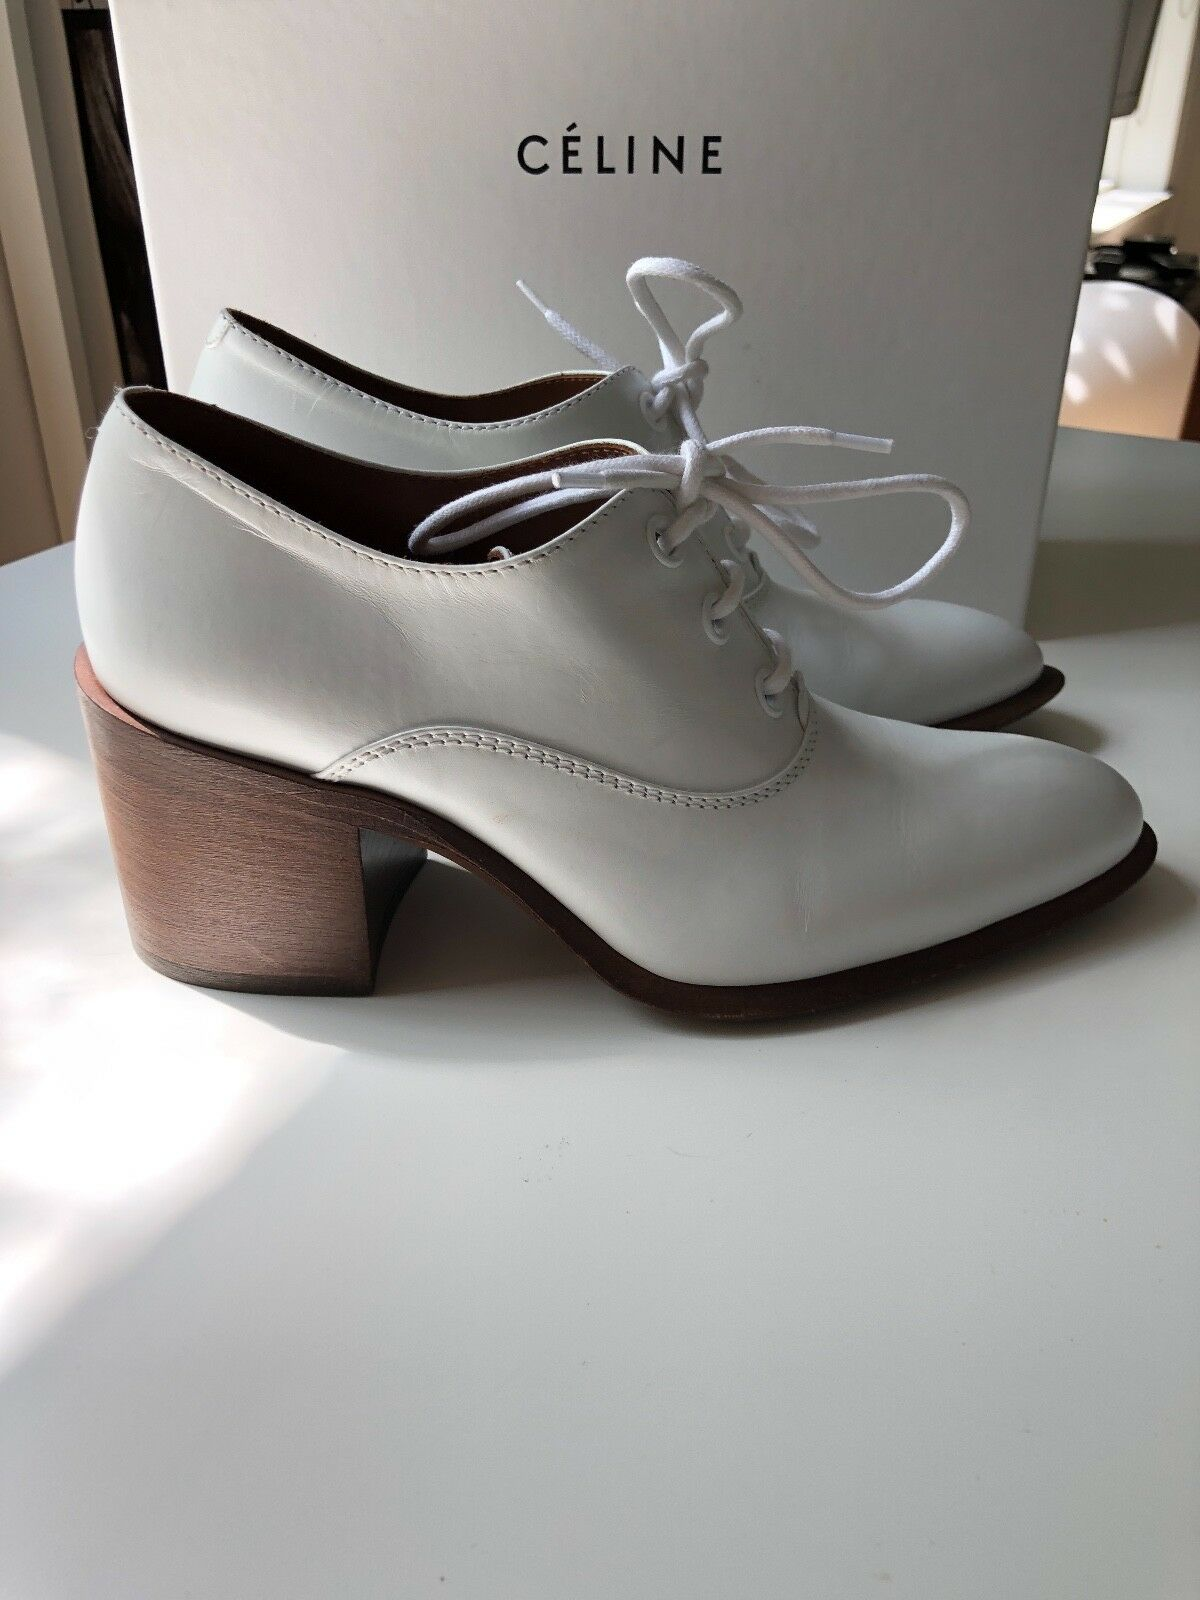 New Celine White Leather Oxford Lace-Ups - SIZE 36.5   US 6.5